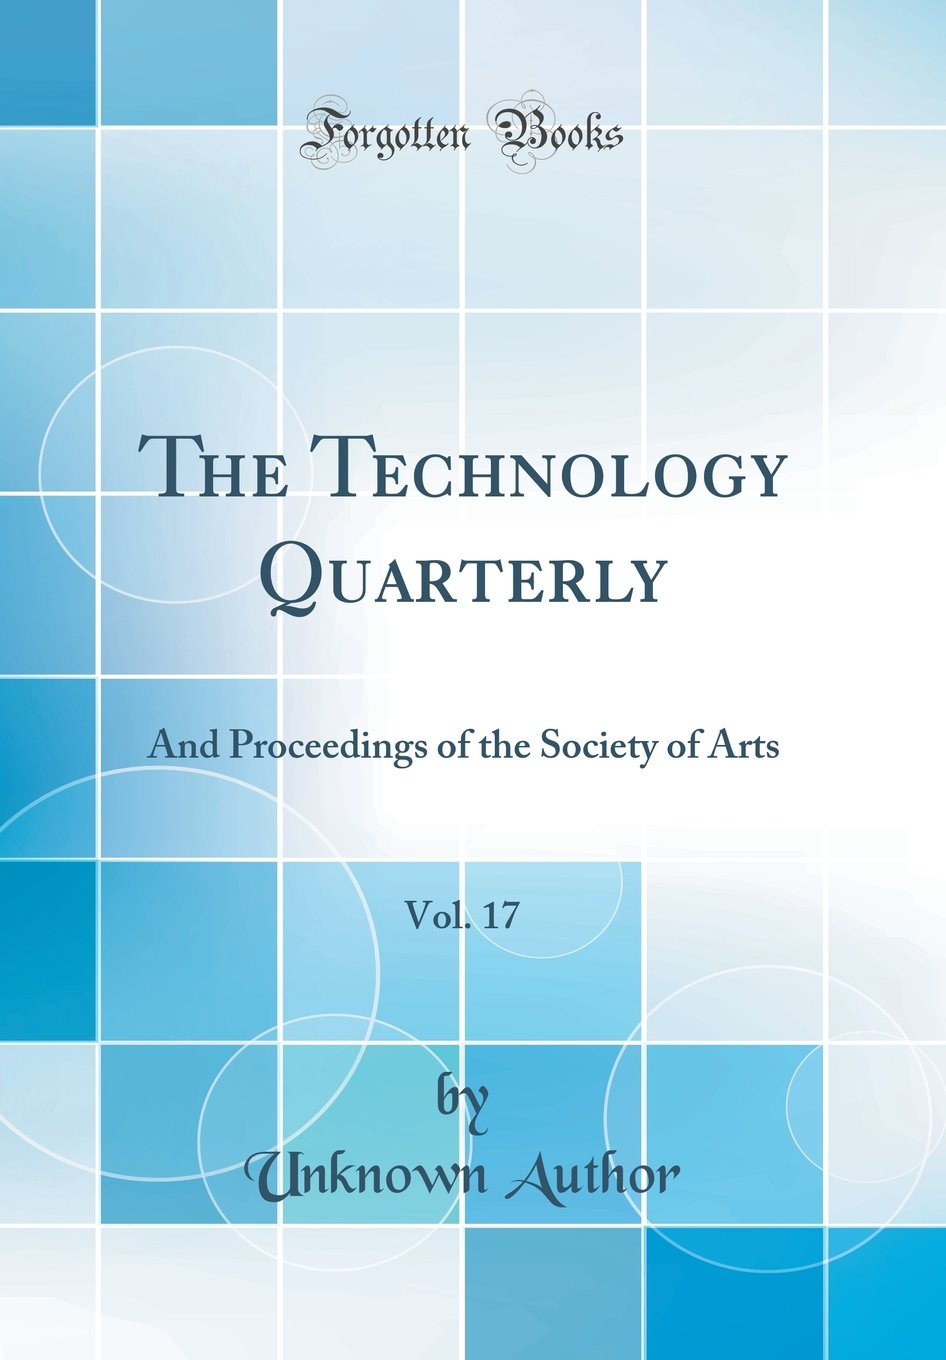 The Technology Quarterly, Vol. 17: And Proceedings of the Society of Arts (Classic Reprint) pdf